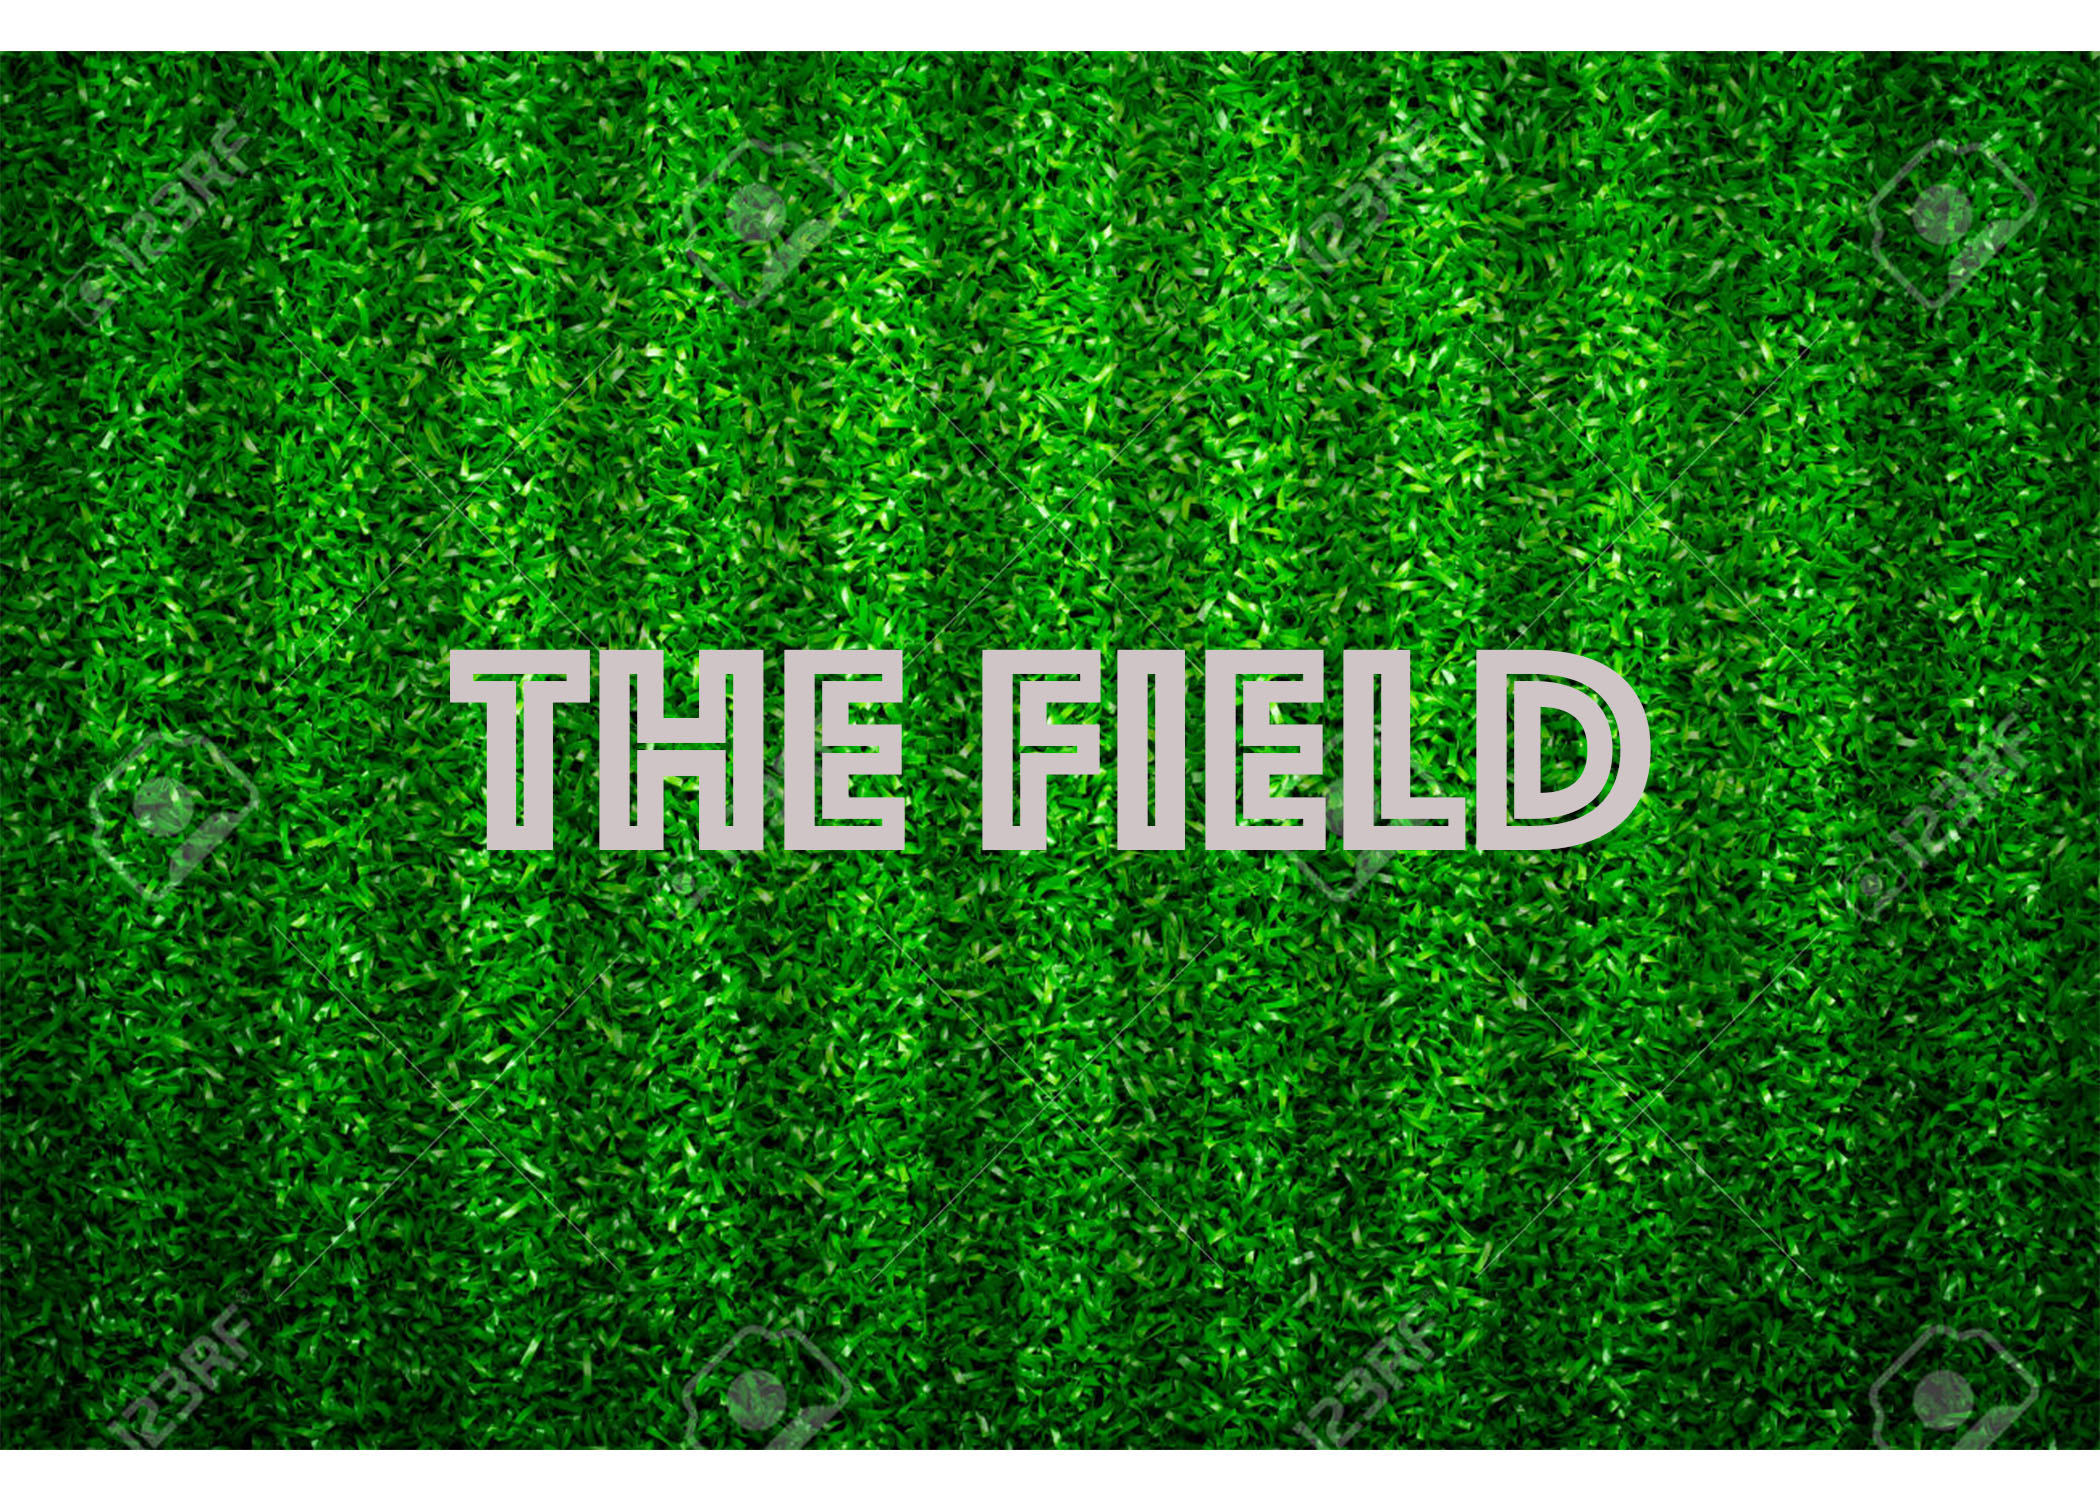 CSz LAu0027s Indy Night! The Field Features Several Different Acts All On The  Same Evening. The Line Up Includes Performers From CSz Los Angeles And  Other ...